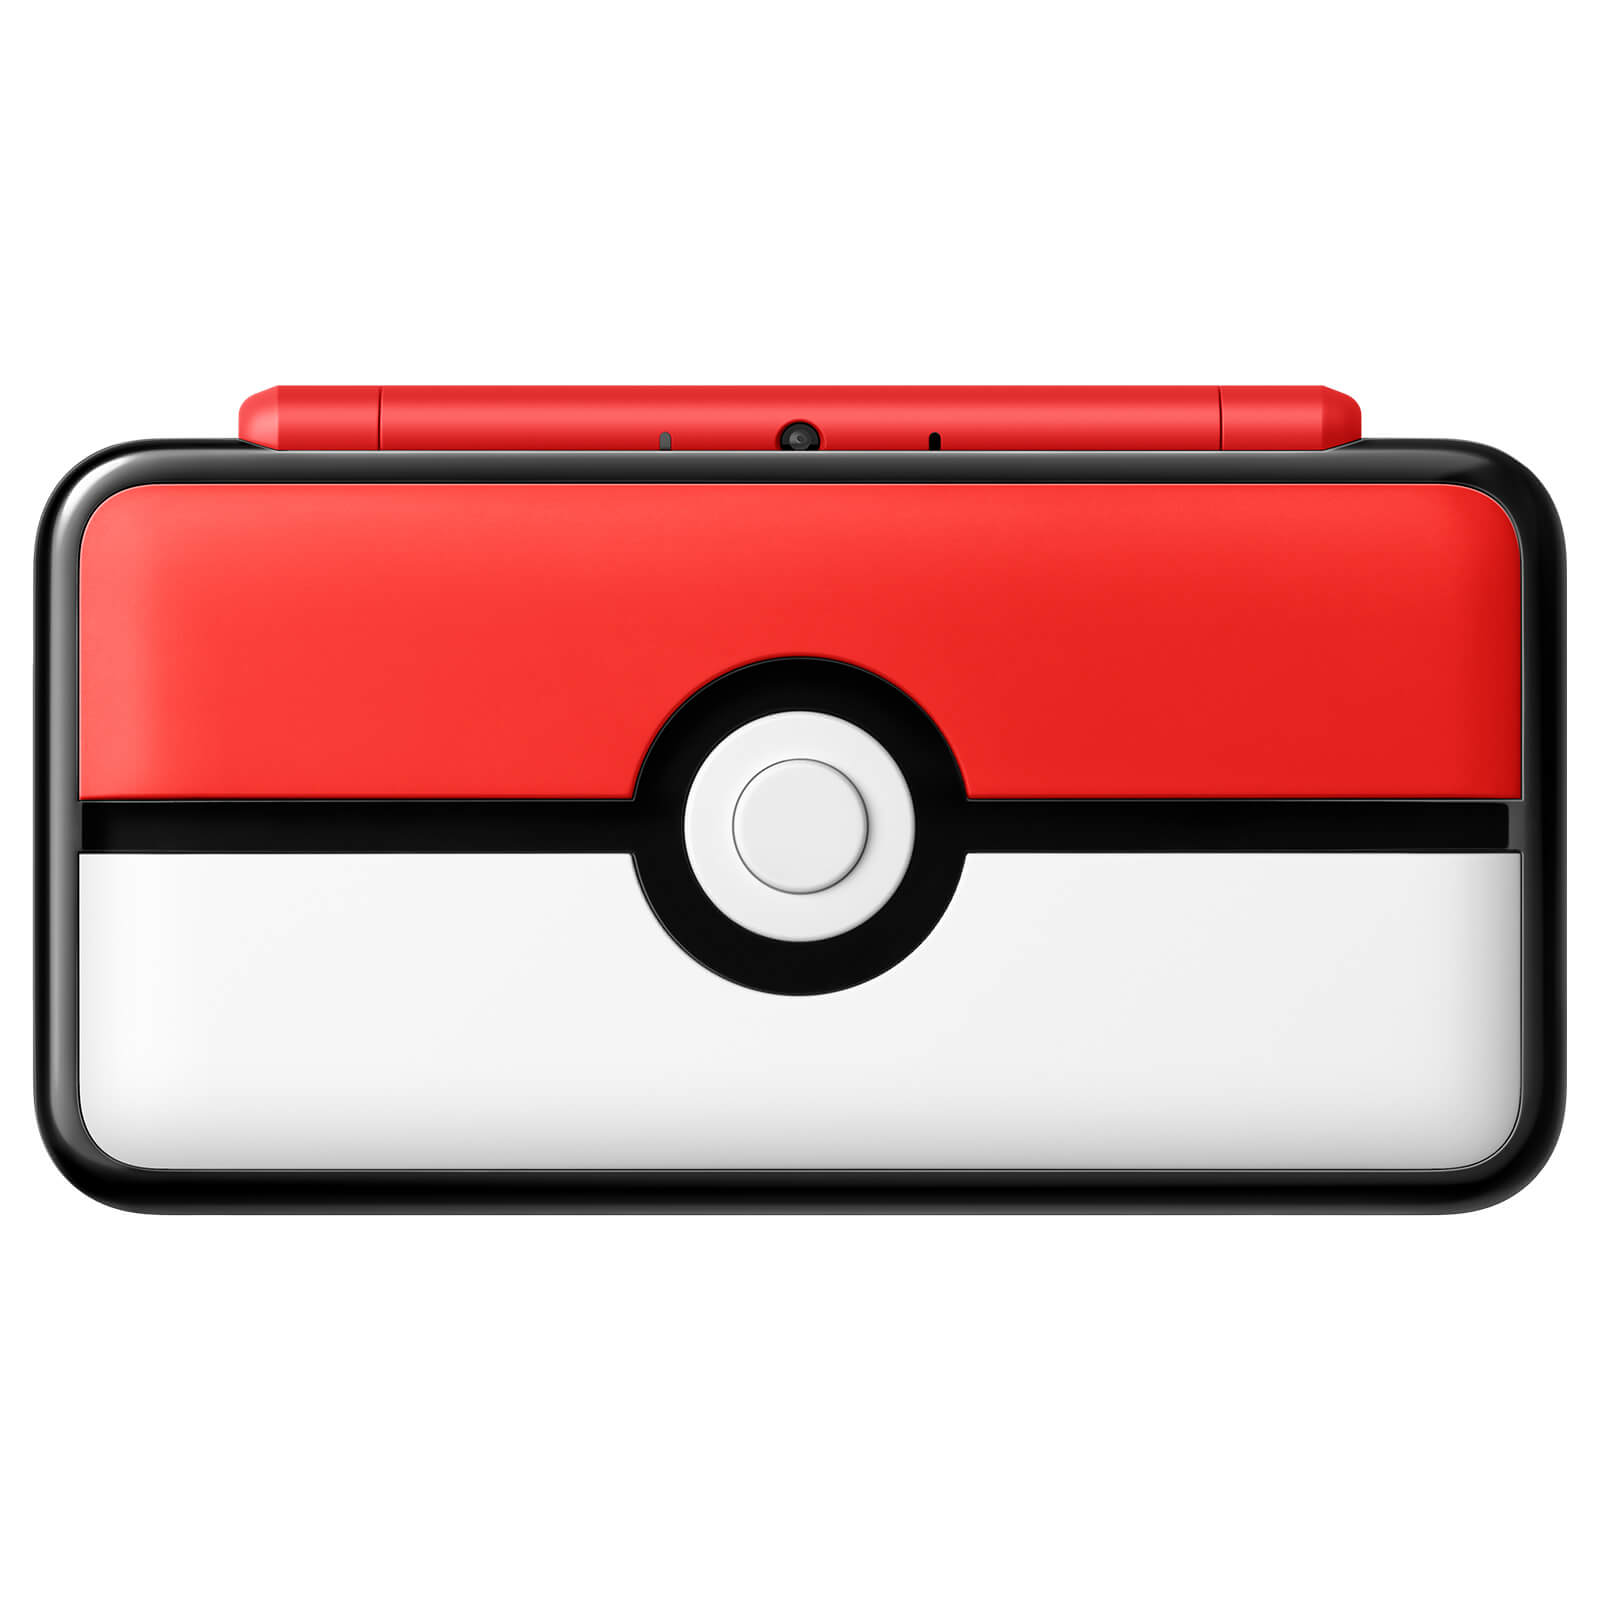 New Nintendo 2DS XL Pokéball Edition Closed Image 2